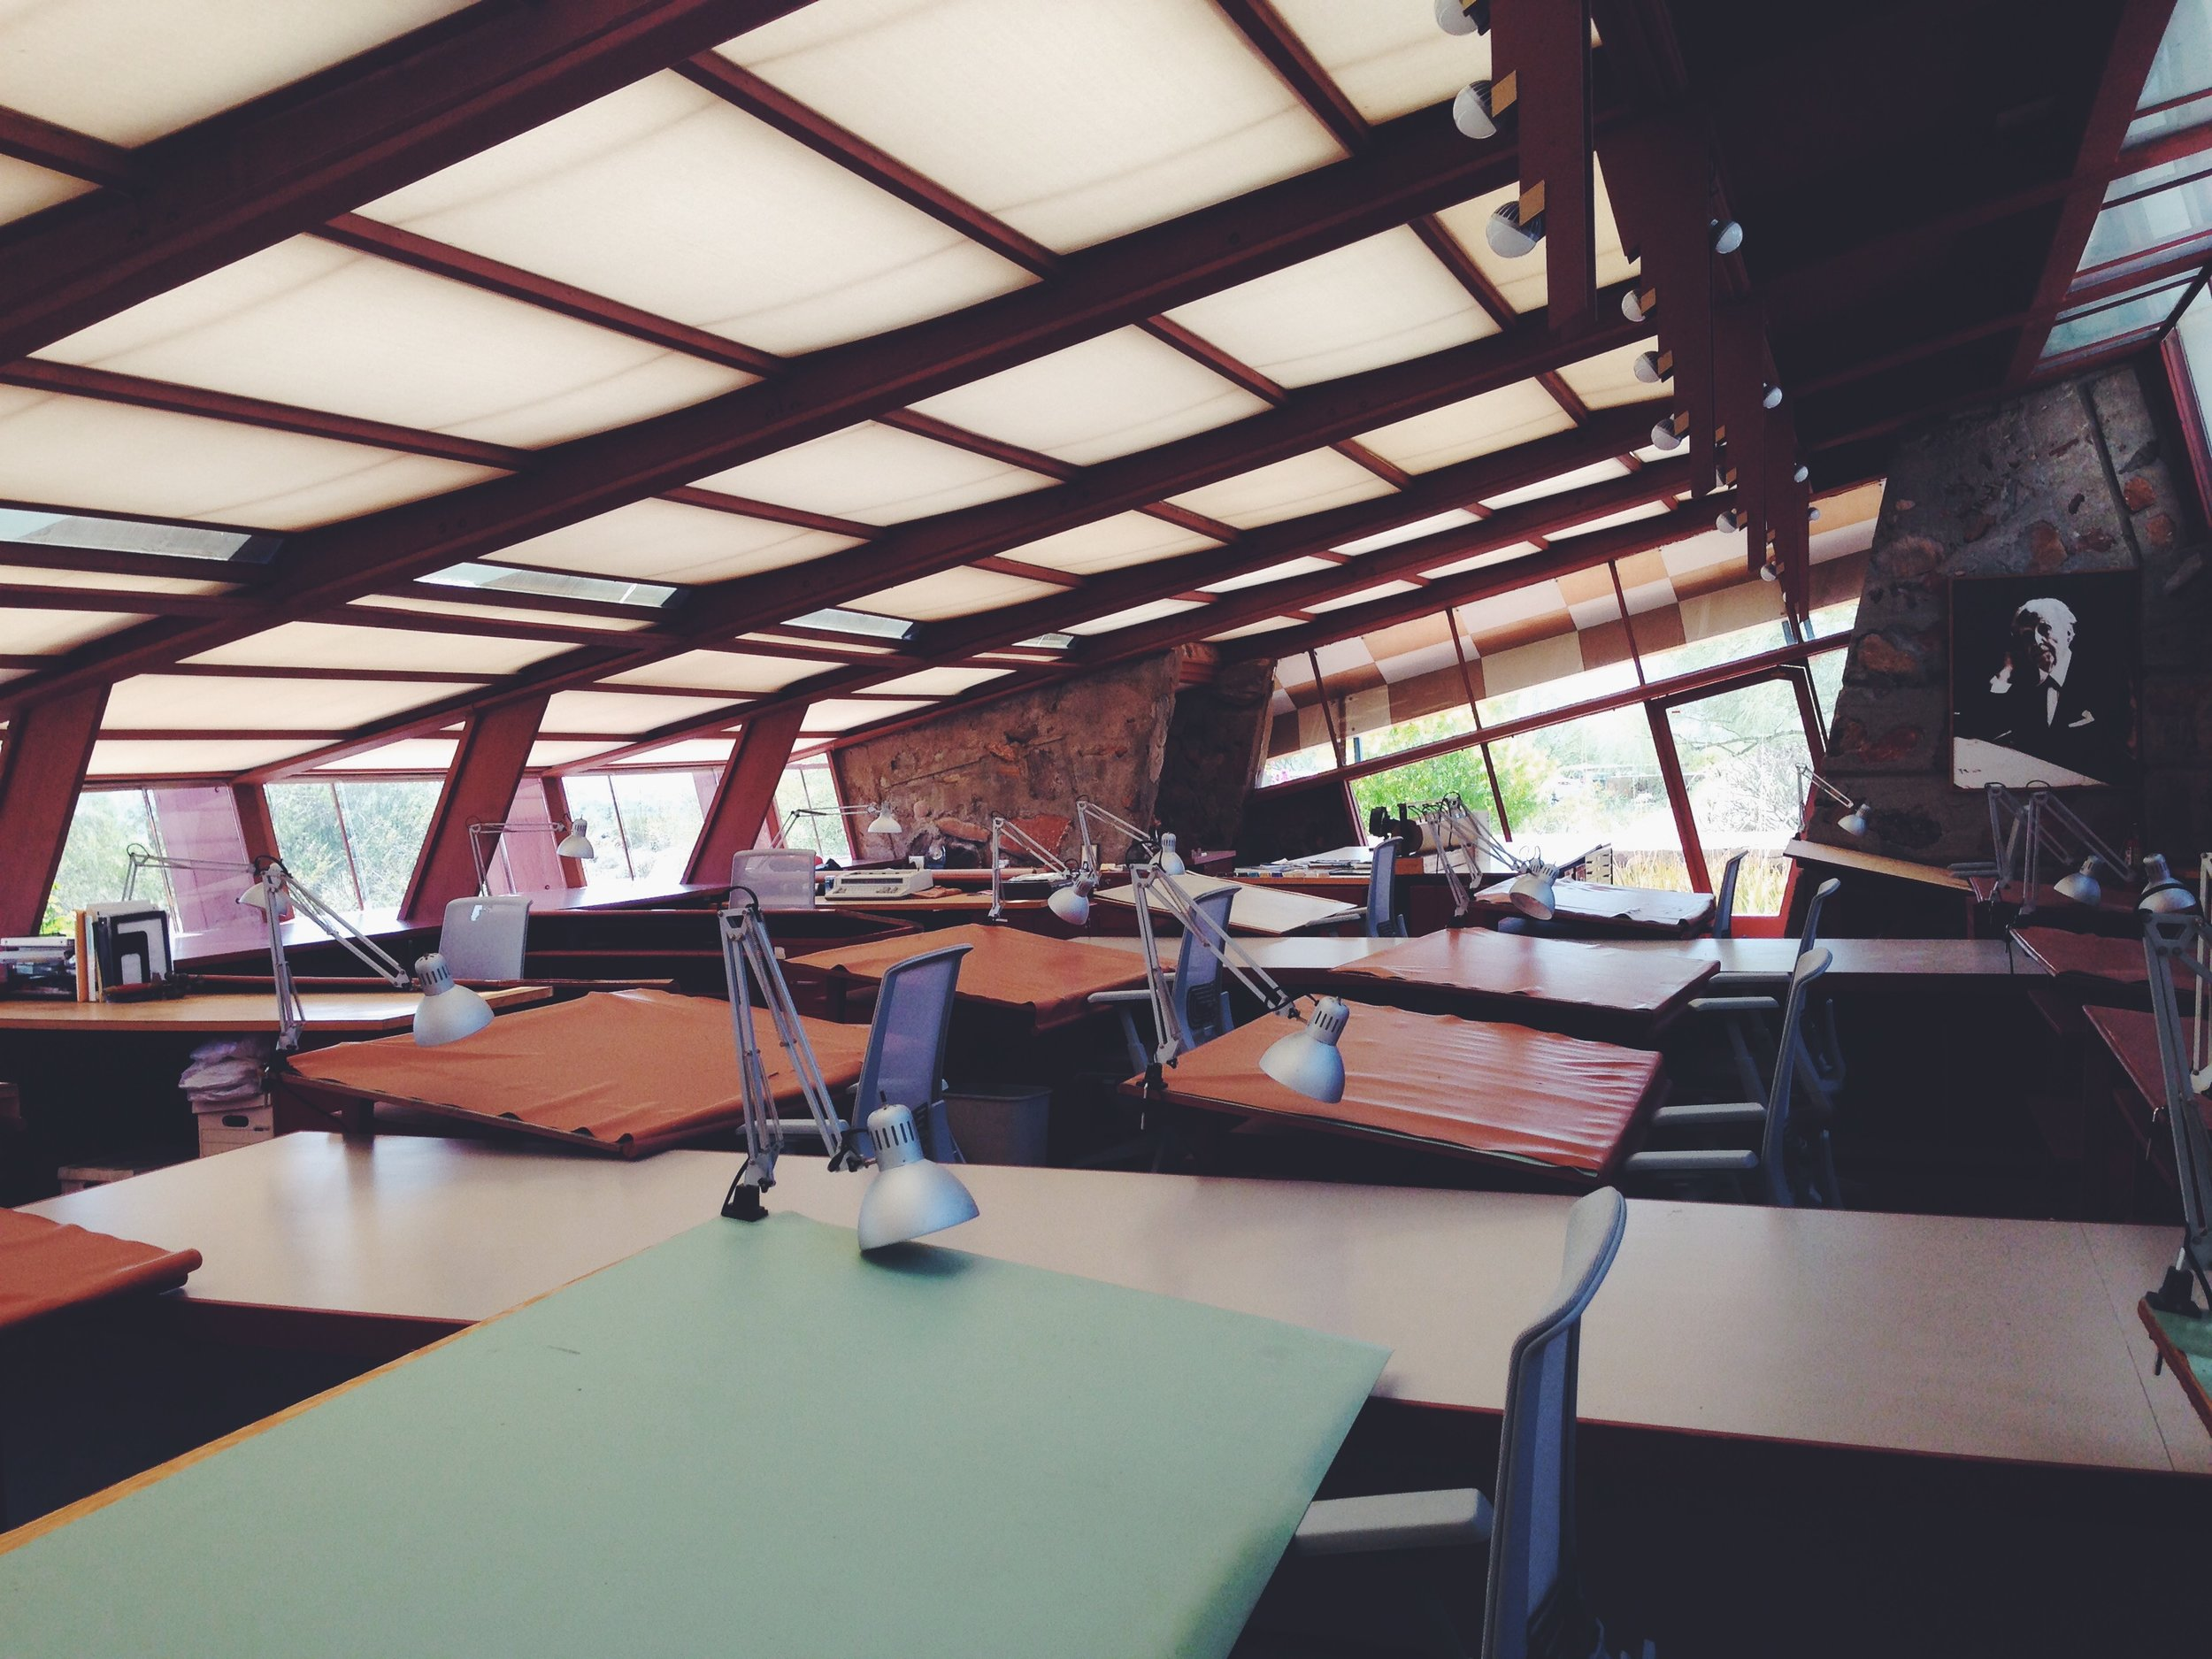 Taliesn West Drafting Room